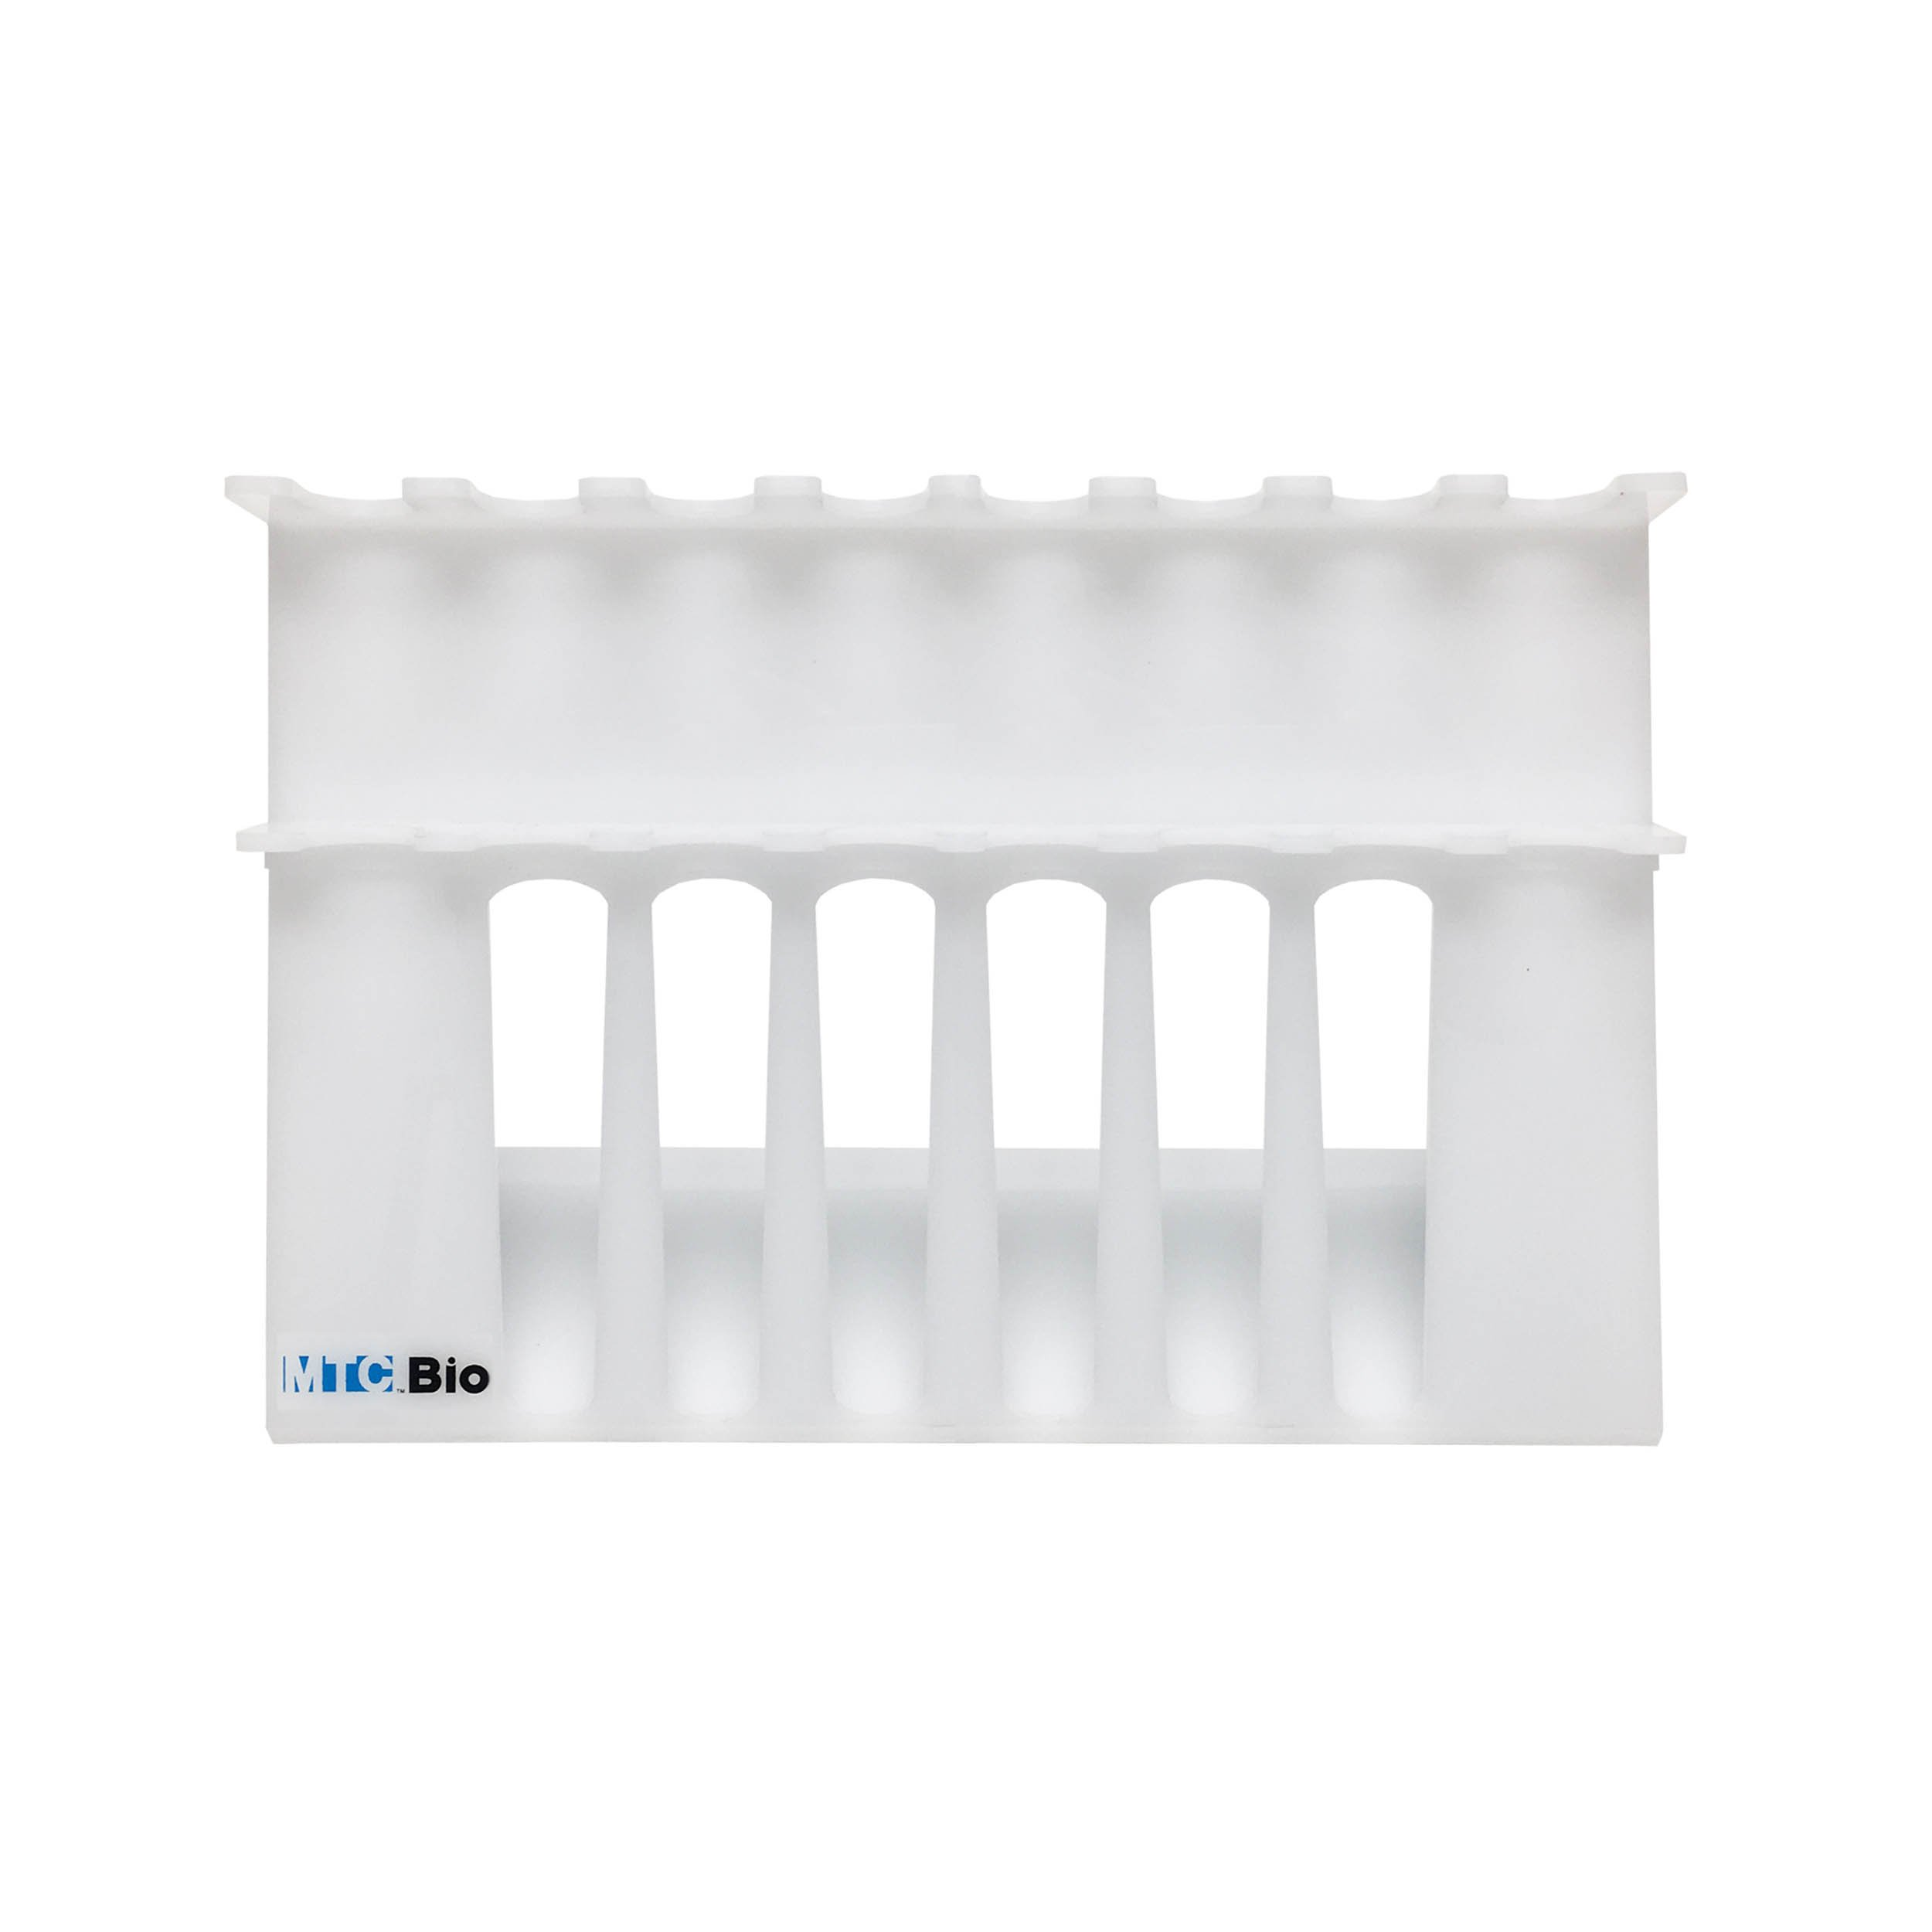 SureStand MultiChannel Capable Acrylic XL Pipette Rack for 8 Pipettes (Up to 6 Multi-Channels) - Pack of 1